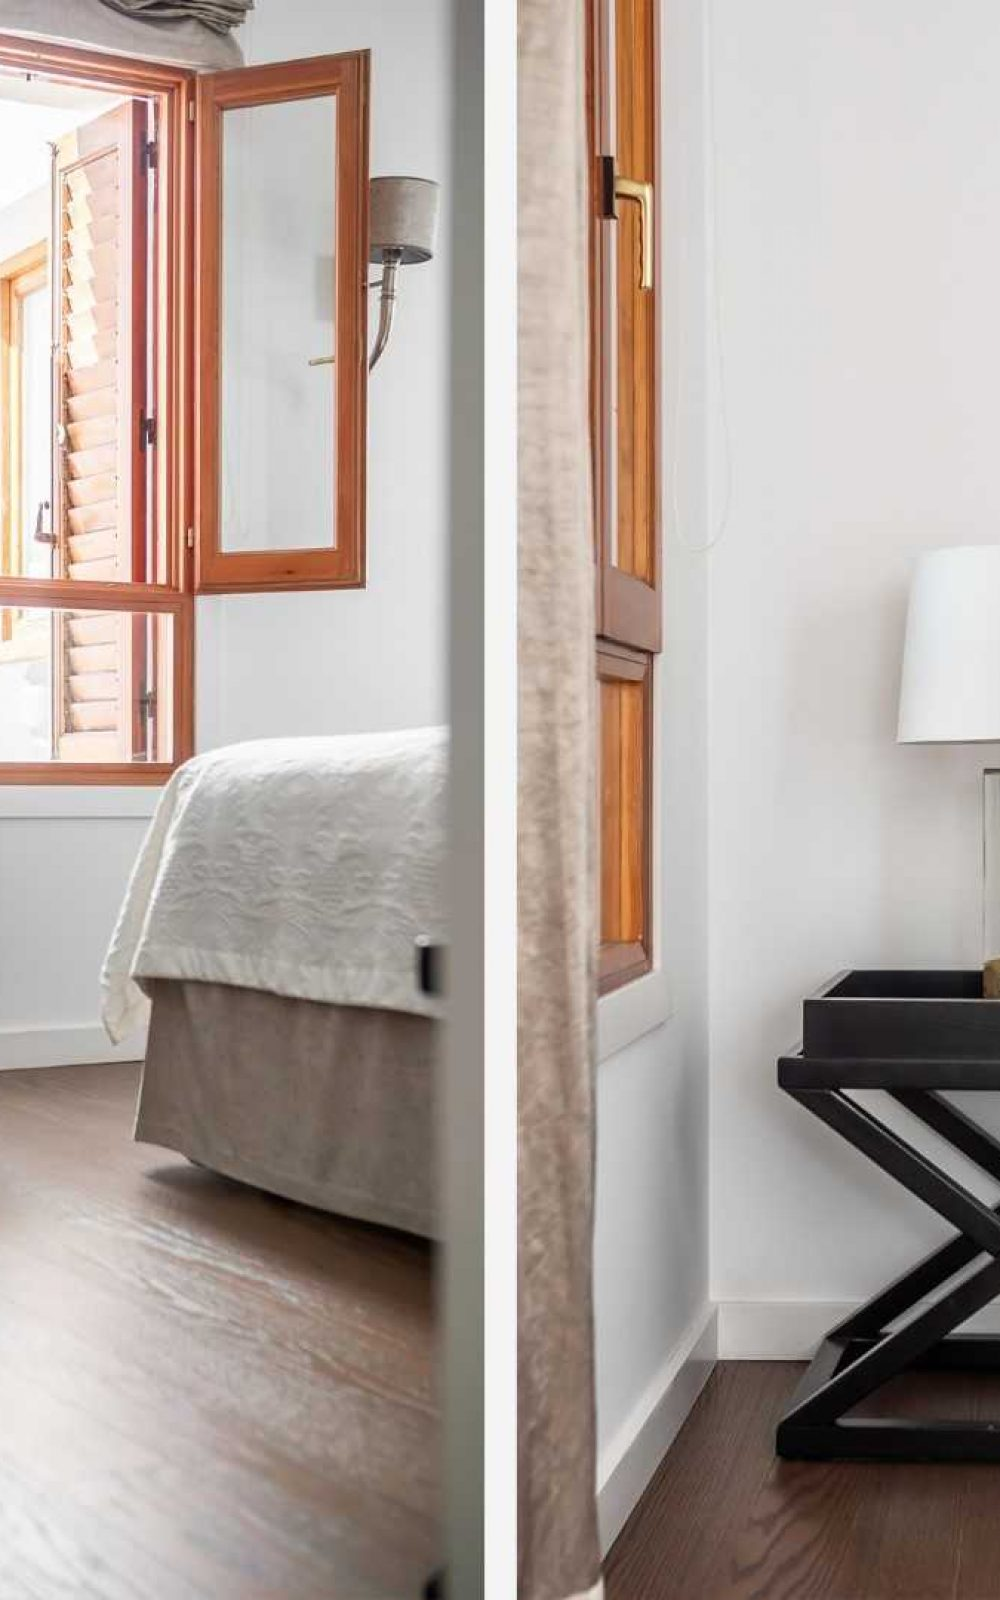 Alcores 532-NFH-04Bedroom-D01 (Large)